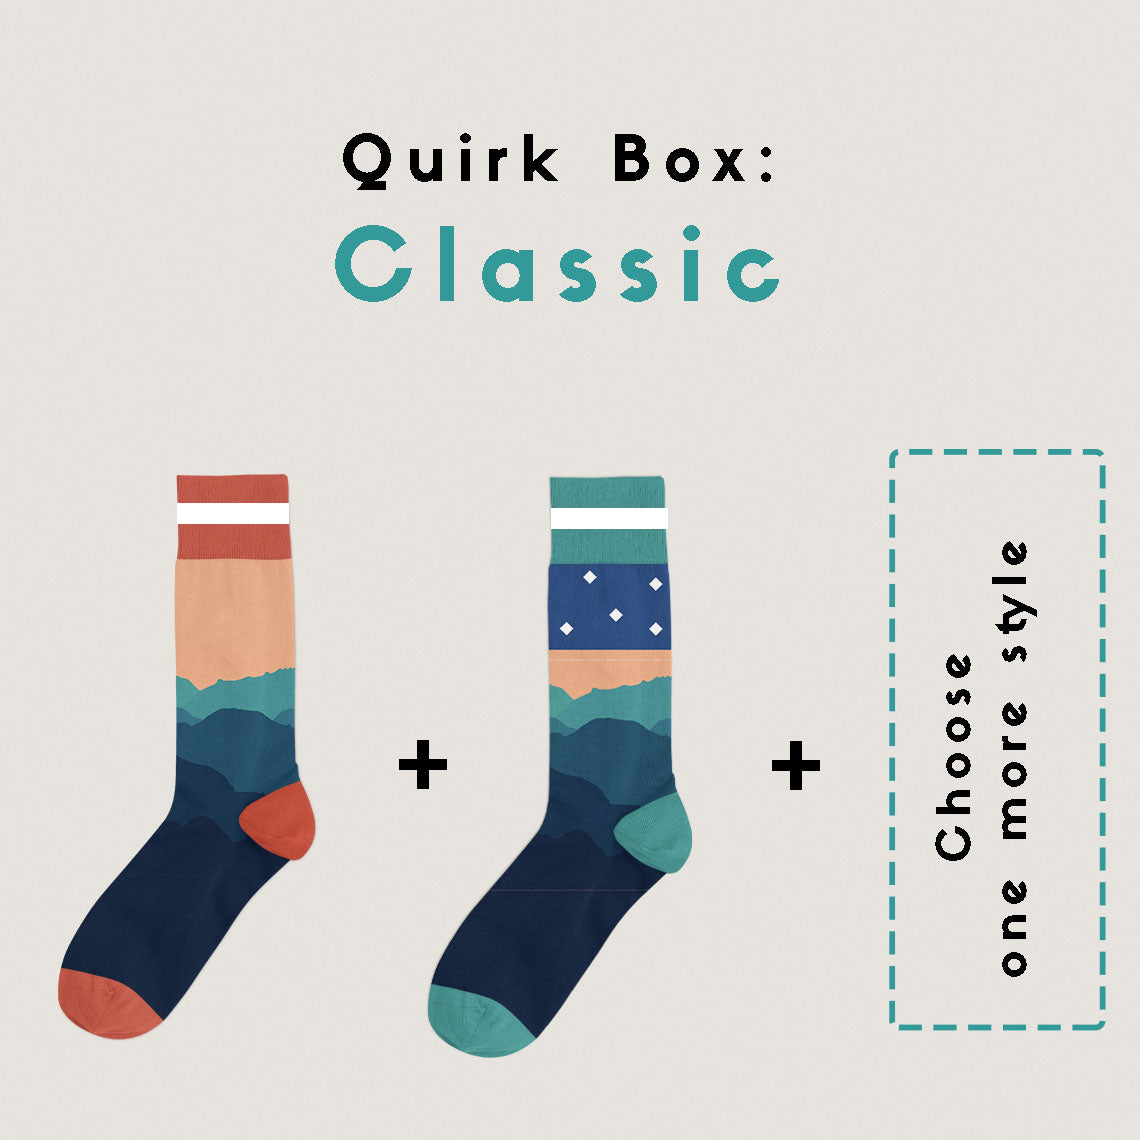 Quirk Box: Classic - Man (3 Months Subscription)